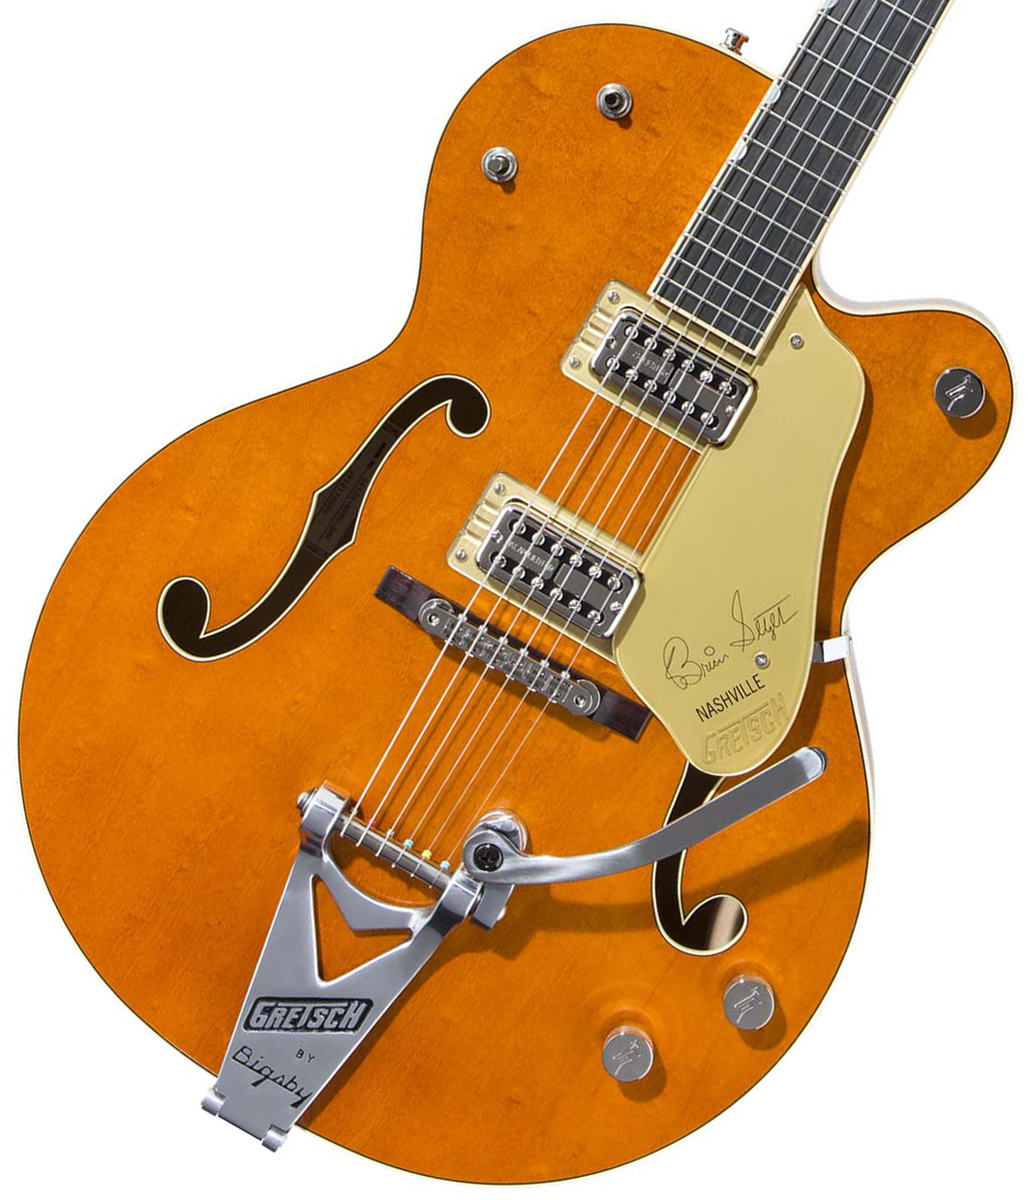 "Gretsch / G6120T-BSSMK Brian Setzer Signature Nashville Hollow Body '59 ""Smoke"" with Bigsby Smoke Orange グレッチ【お取り寄せ商品】"